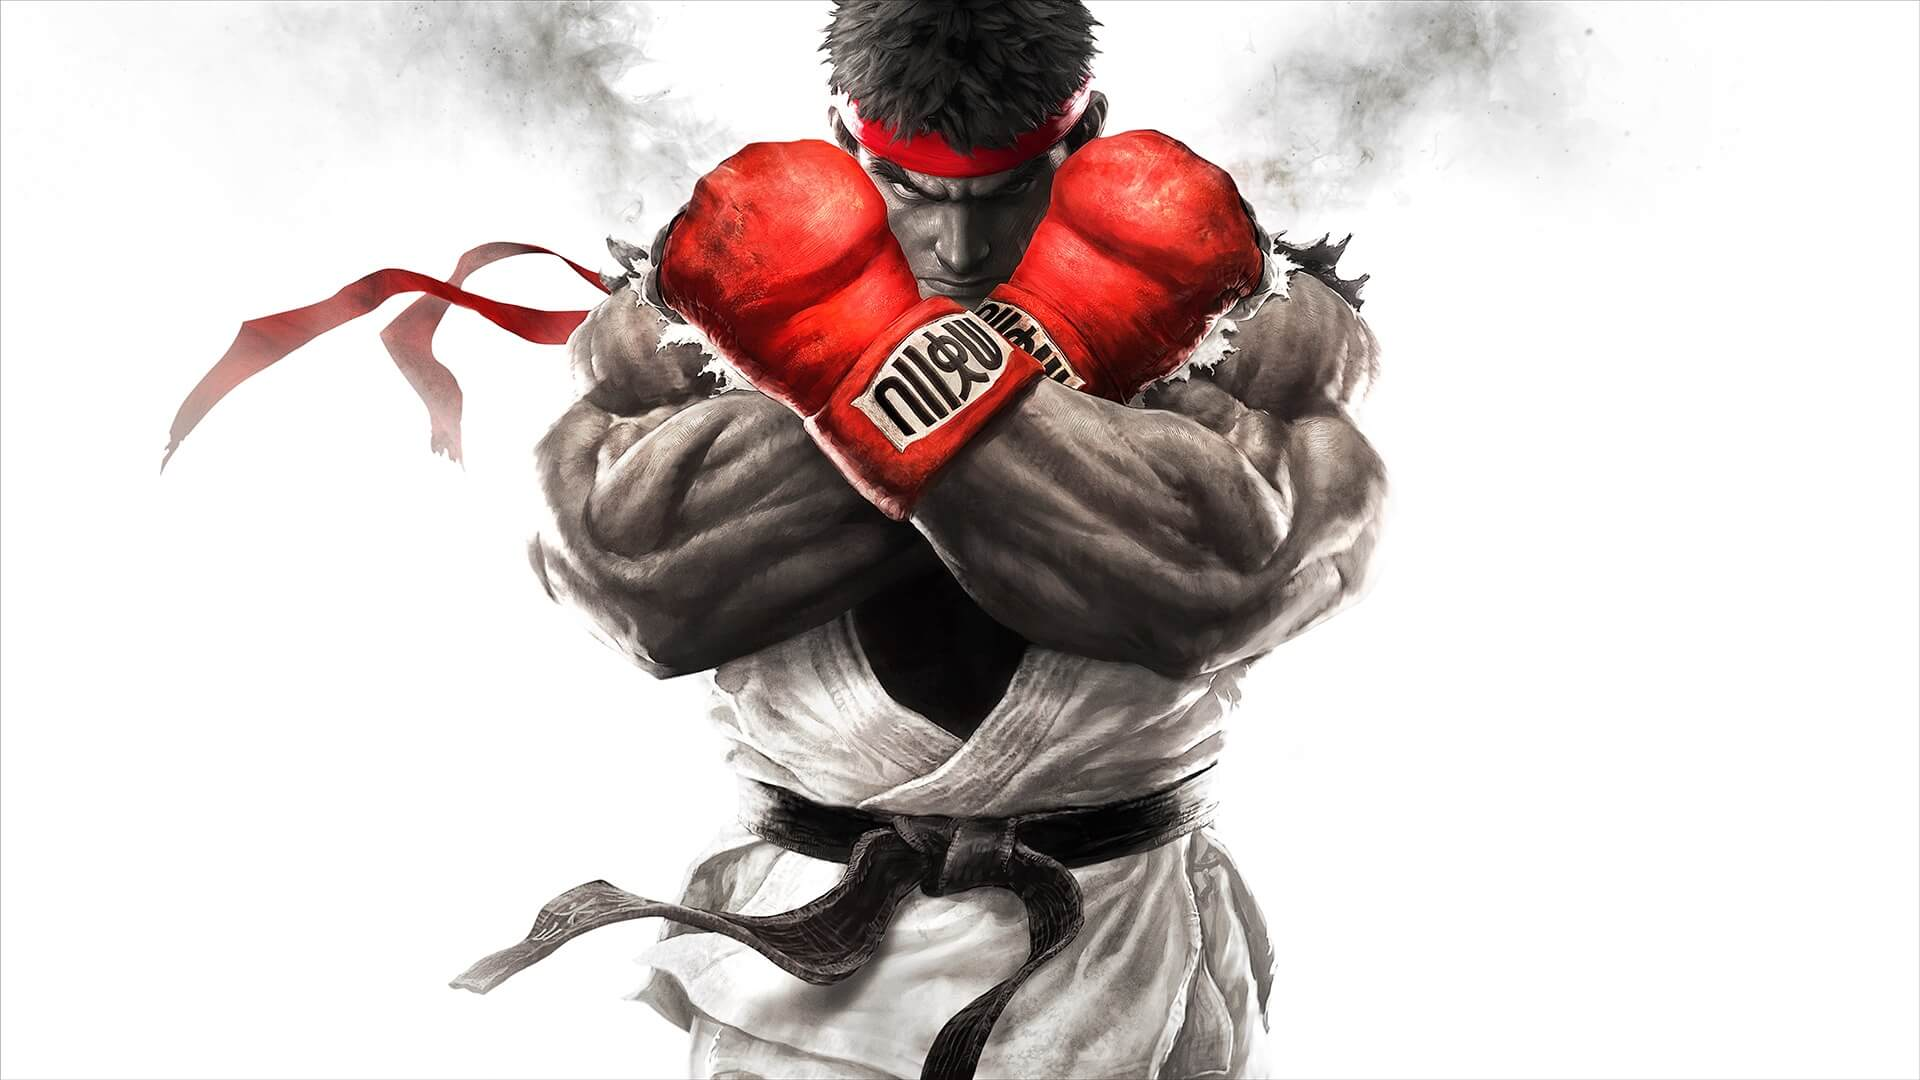 E3 2015: Street Fighter V Beta and Characters Announced